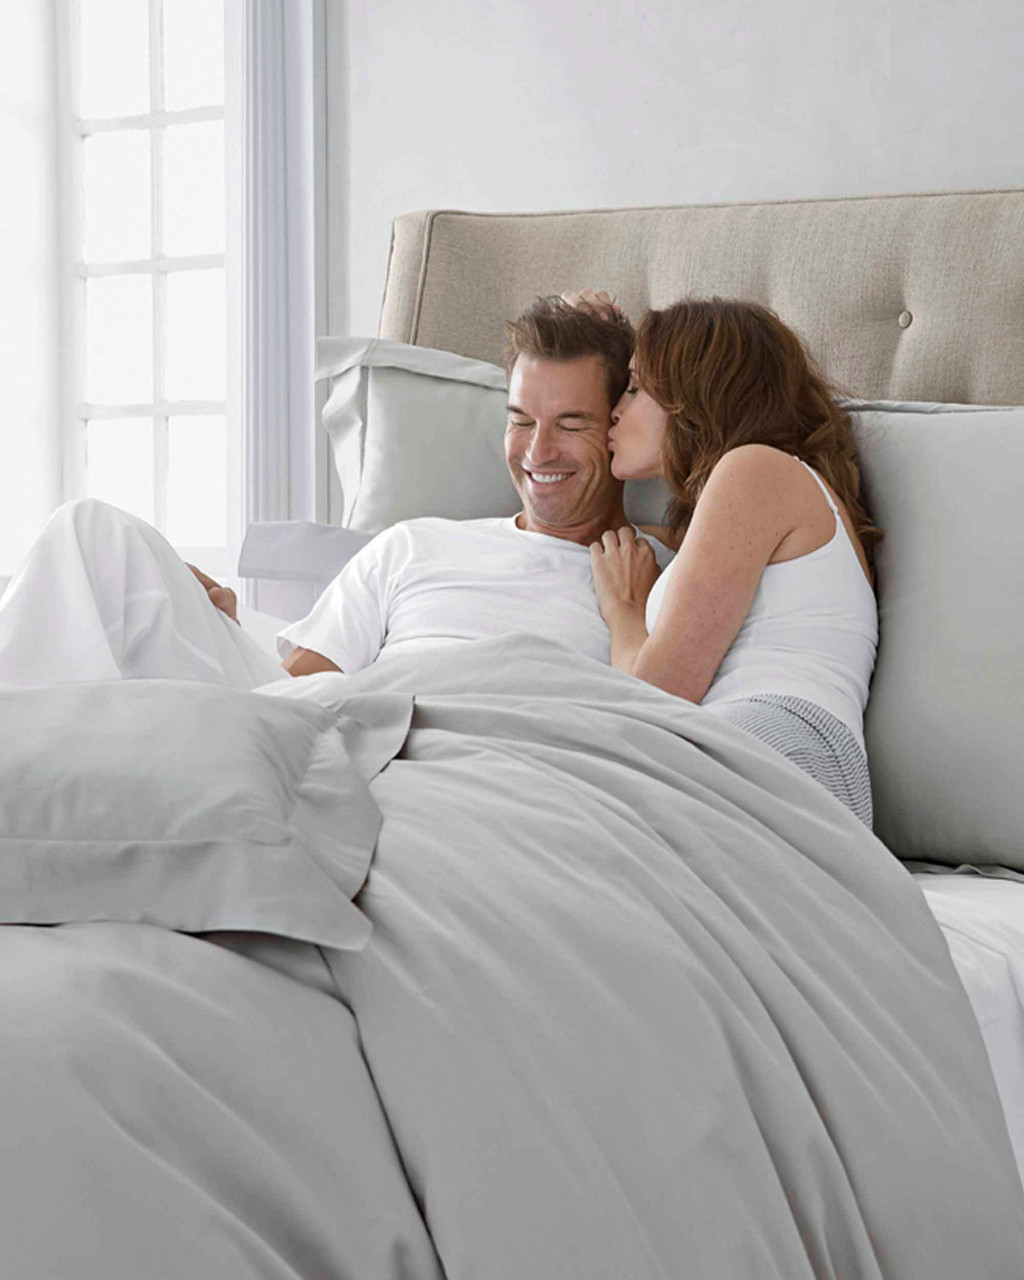 scandia down stresa fitted sheets, scandia home stresa fitted sheets, scandia down linens, scandia home linens